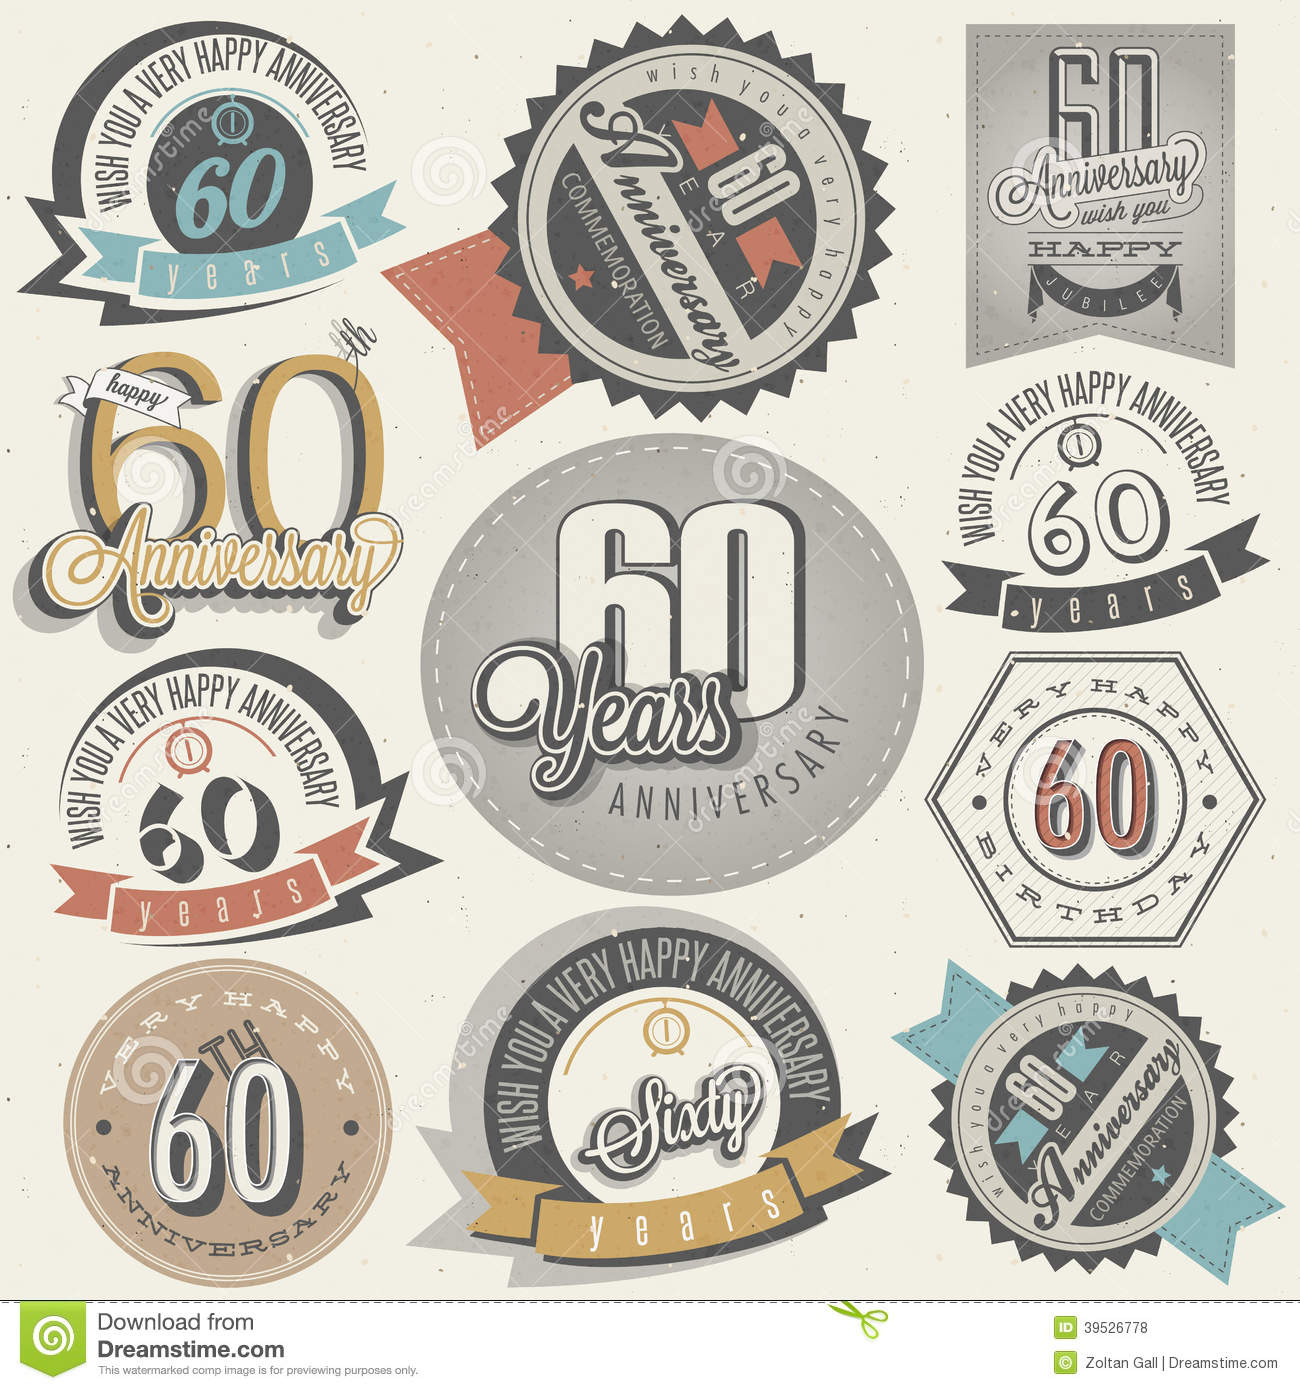 Vintage Style Th Anniversary Collection Sixty Design Retro Labels Greeting Hand Lettering Typographic Calligraphic Elements